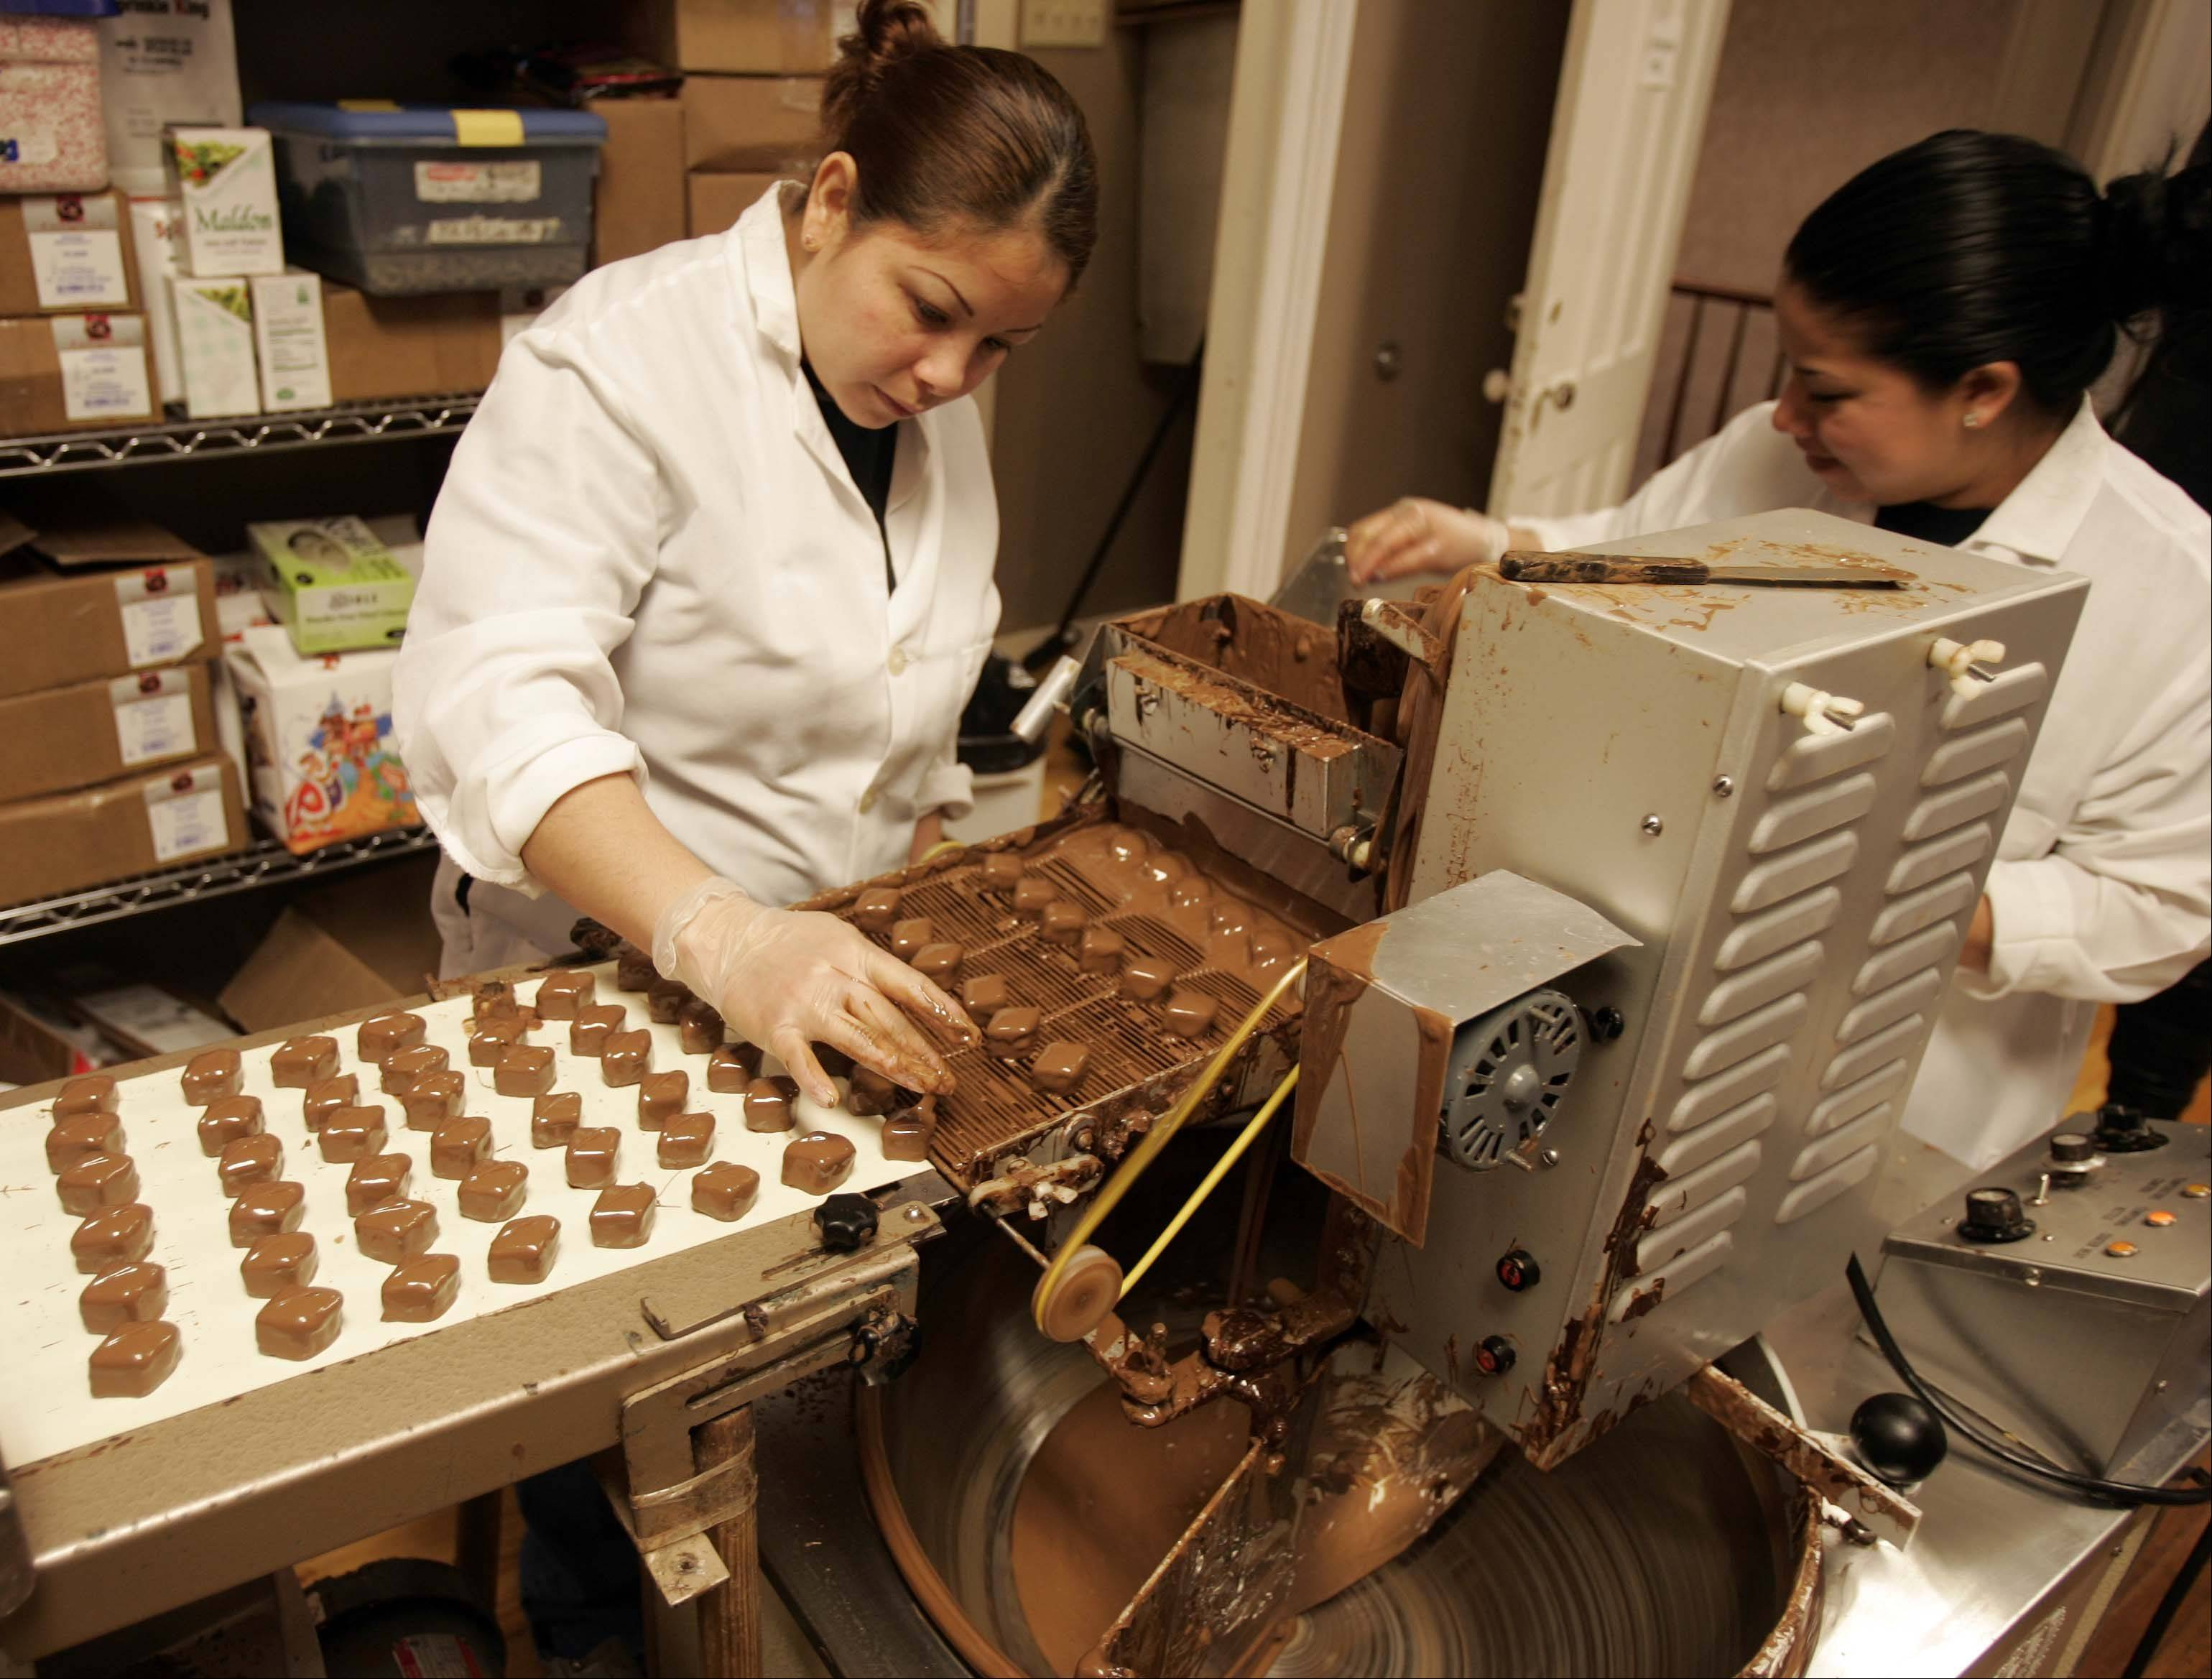 Images: Behind the scenes at Graham's Chocolates in Geneva